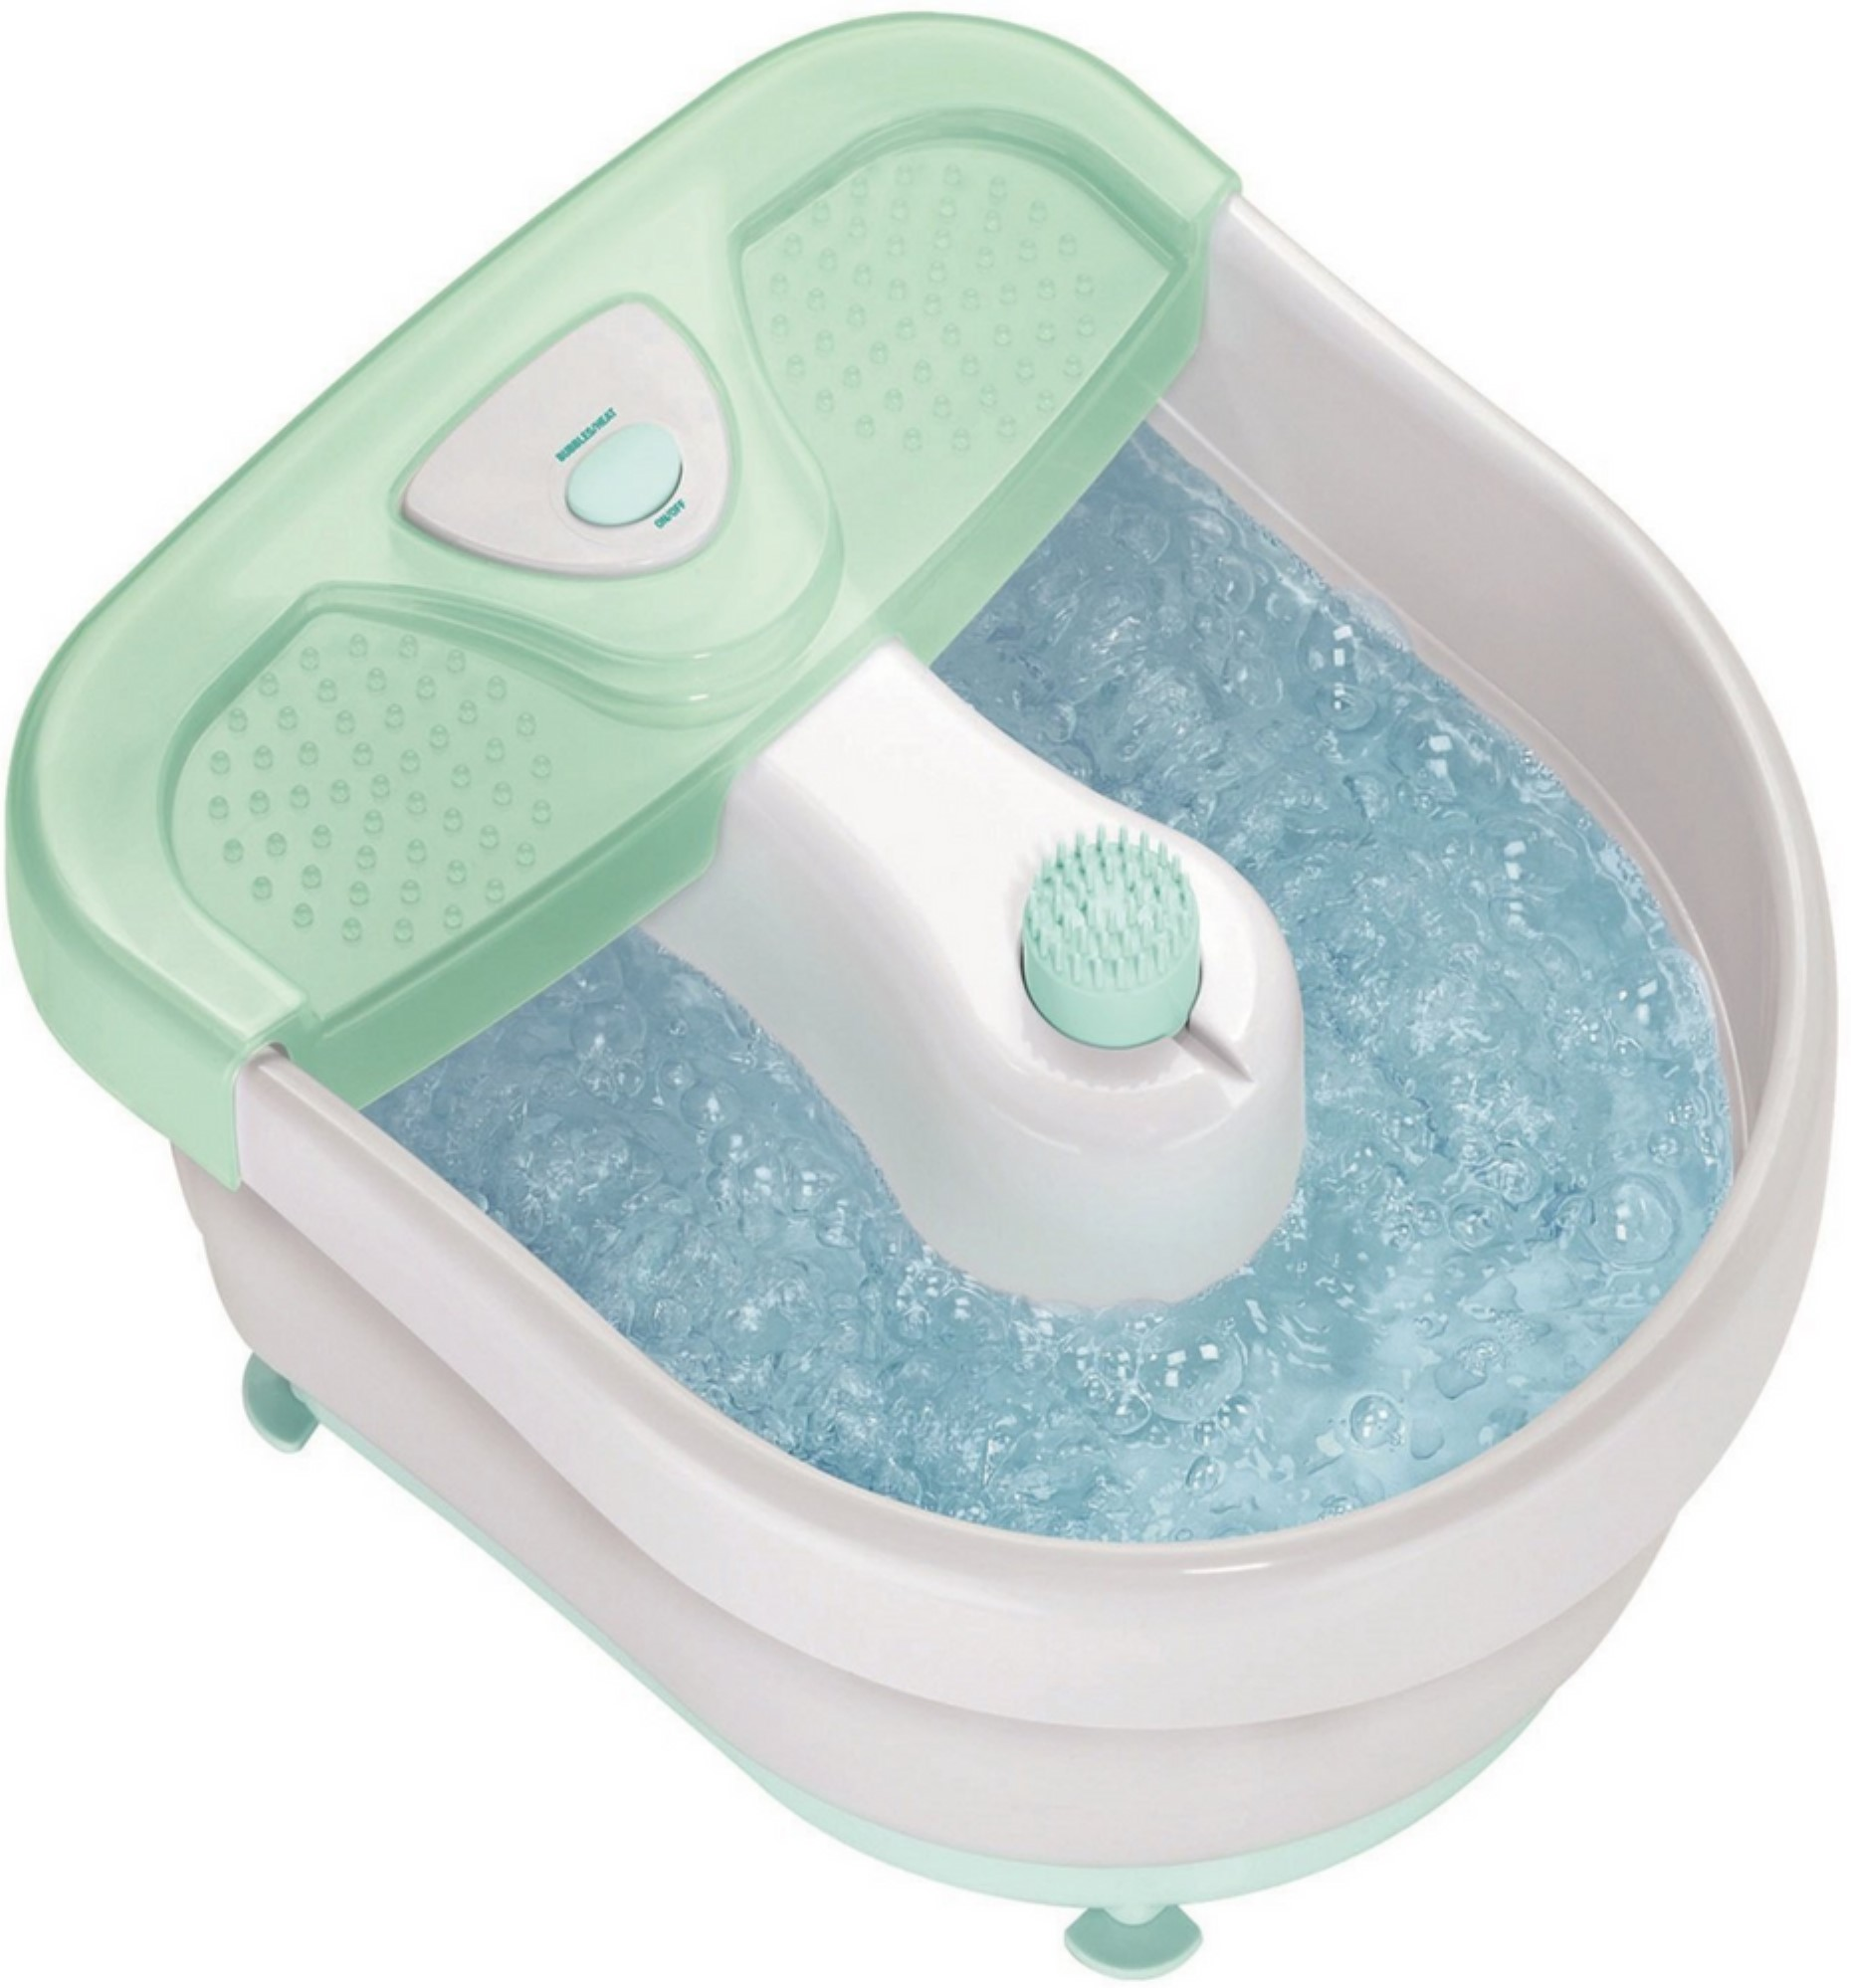 Conair Foot Spa with Massaging Bubbles & Heat 1 ea (Pack of 4 ...